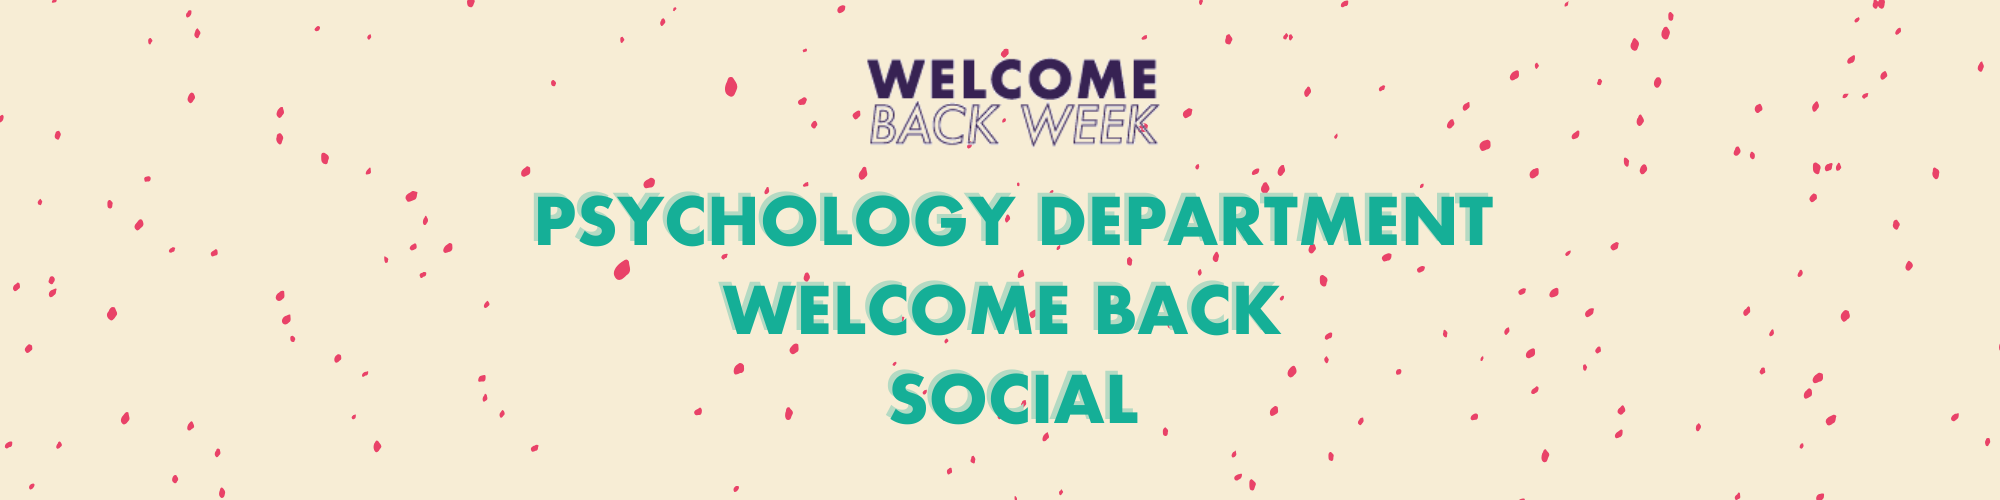 Psychology Department Welcome Back Social